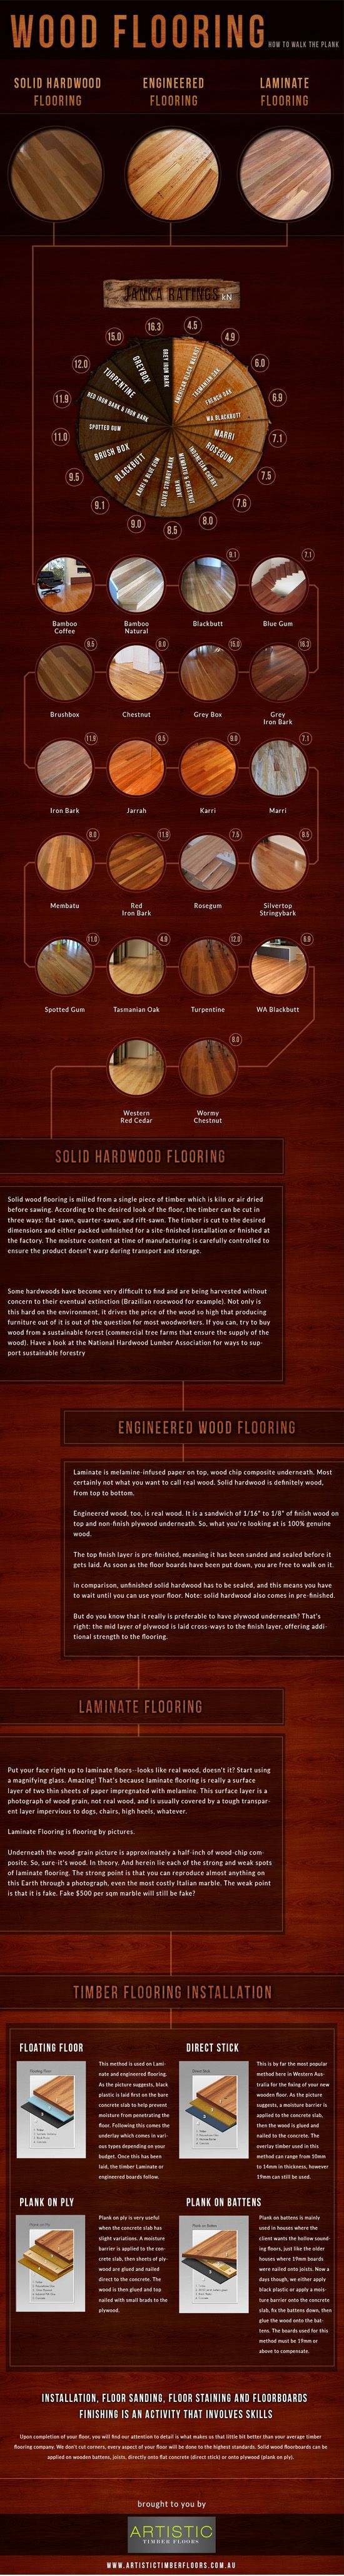 Wood Flooring - How to walk the plank.  This Infographic introduces the different types of Timber Floors available in Perth WA.  We aim to show you the 3 main types of wood flooring which are: Solid hardwood flooring, Engineered flooring and Laminate flooring.  You will learn about the Janka hardness ratings of the floorboards and how do we install your timber floorings.  Feel free to contact us if you have any questions.